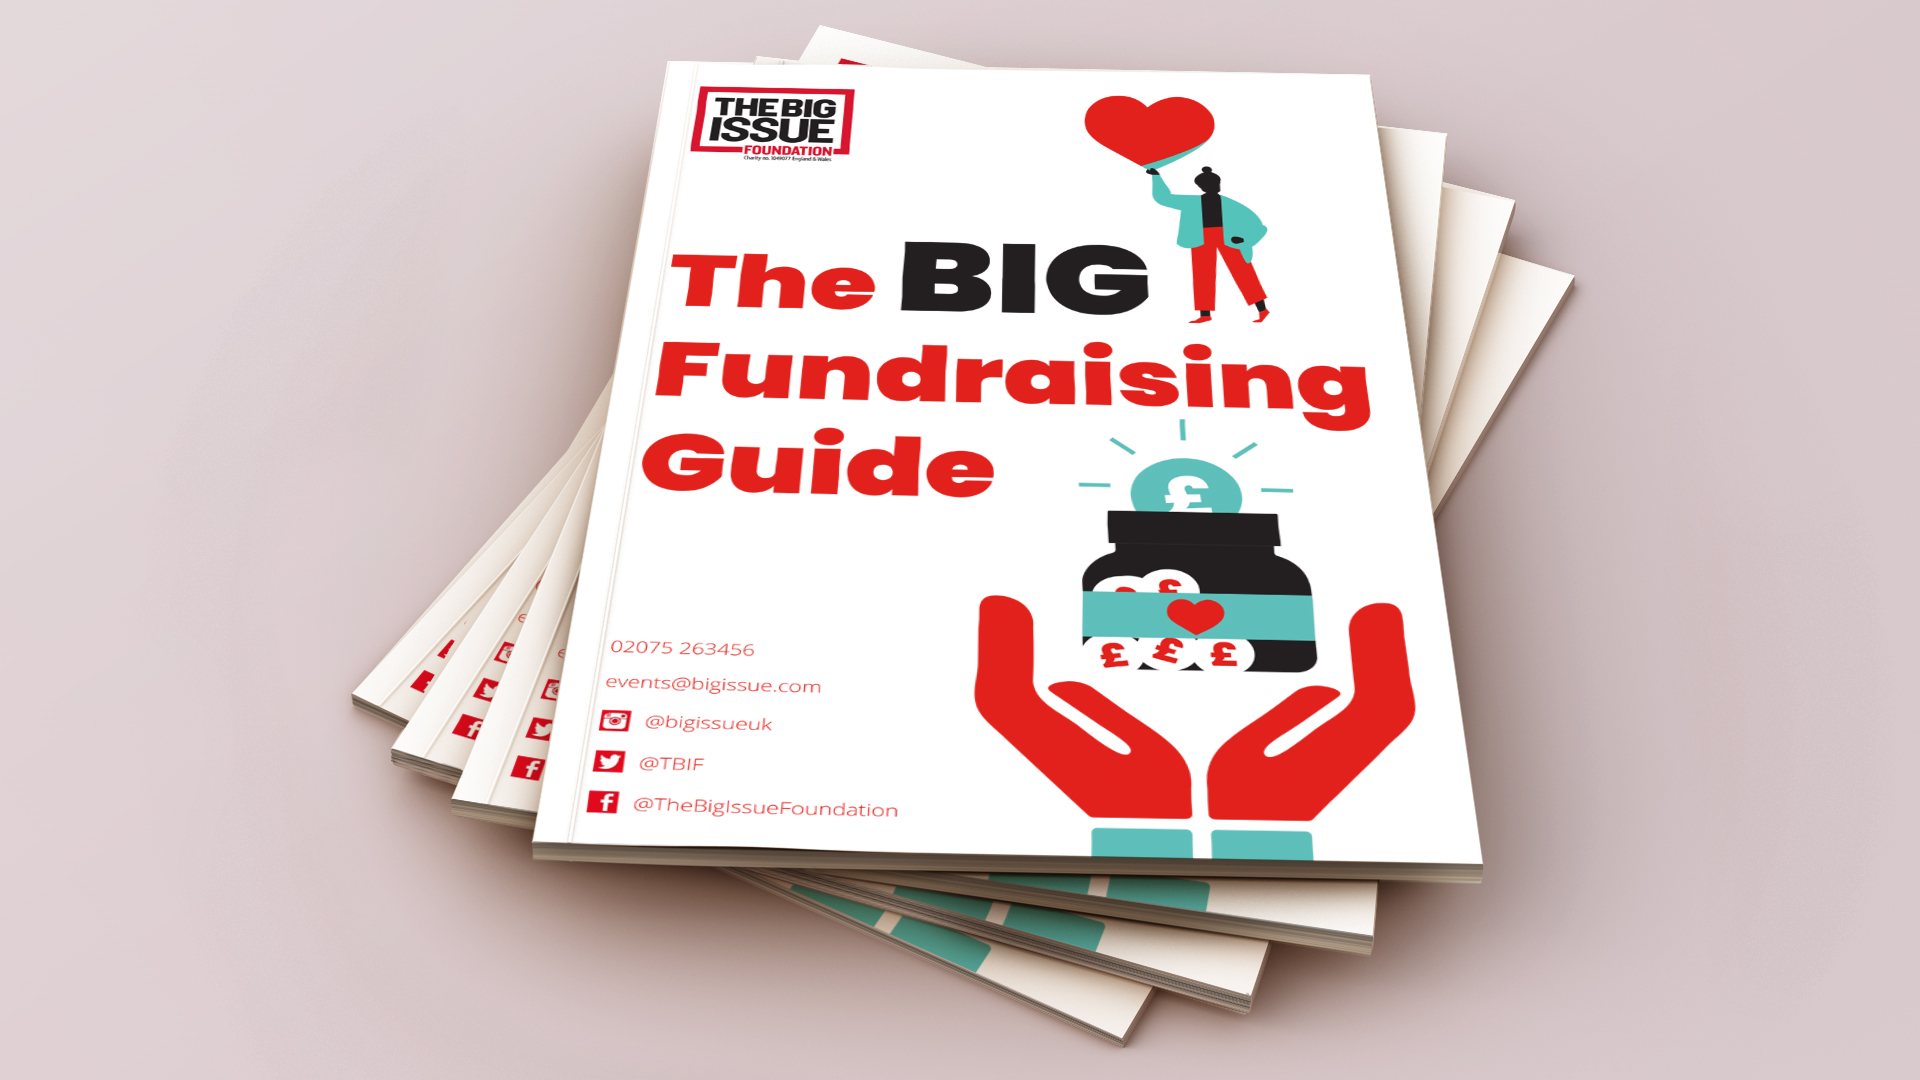 The Big Issue Fundraising Guide Design